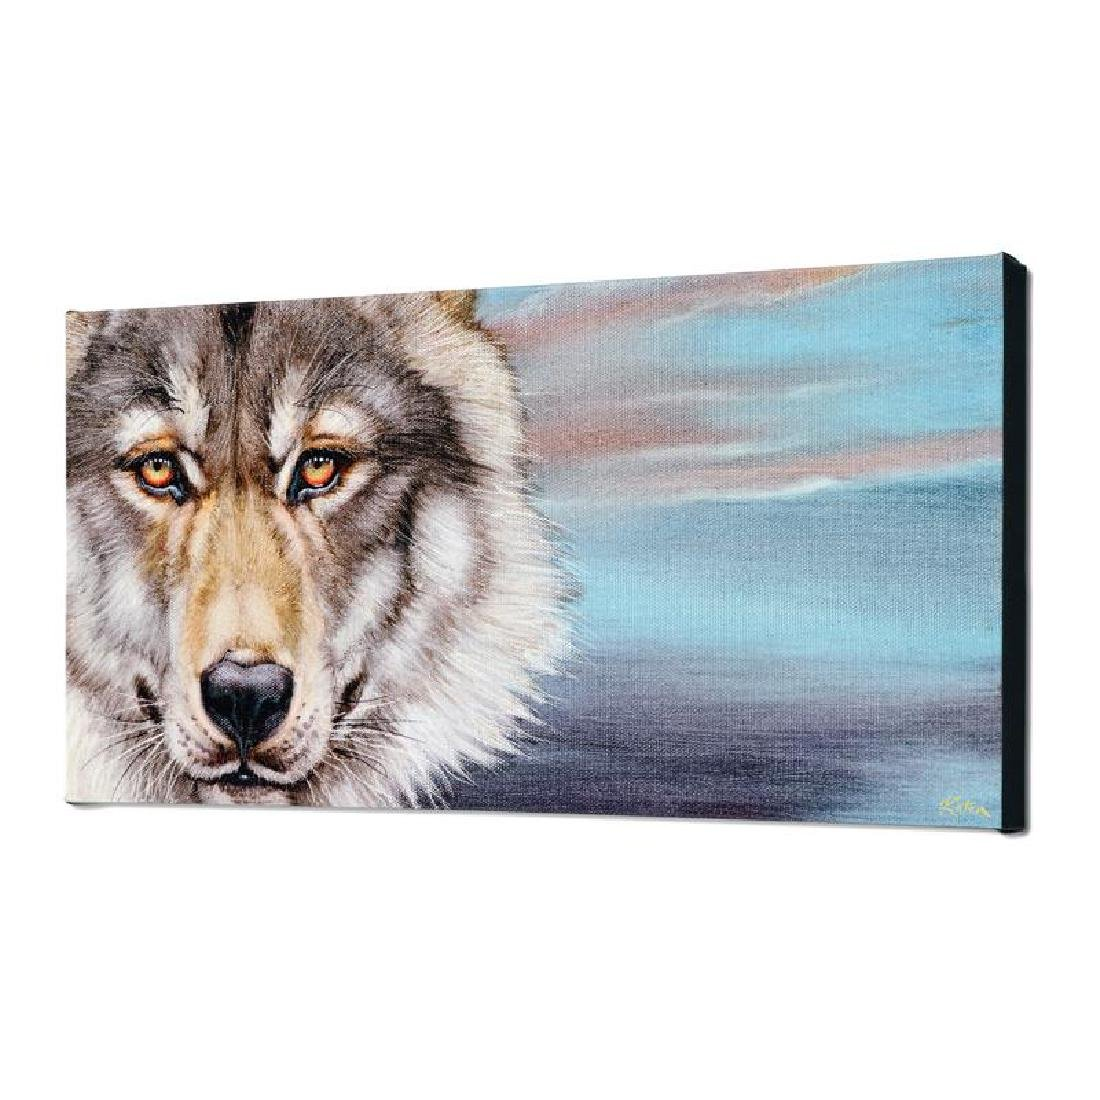 """Wolf"" Limited Edition Giclee on Canvas by Martin Katon"